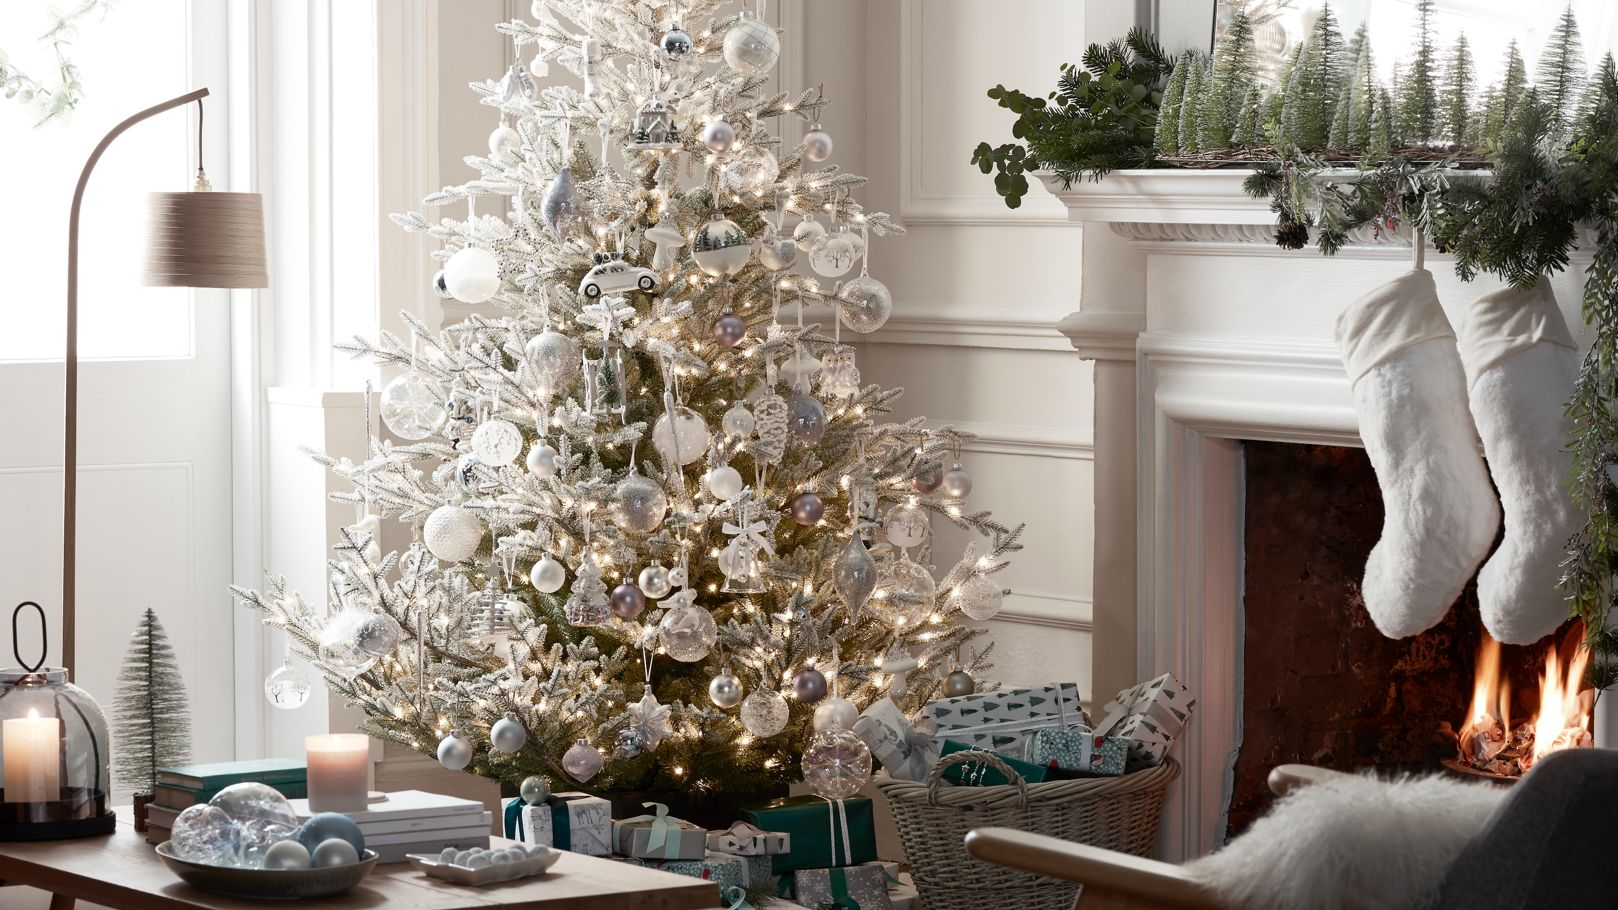 Beautiful Christmas tree decorated with colourful, impressionism inspired baubles and ornaments